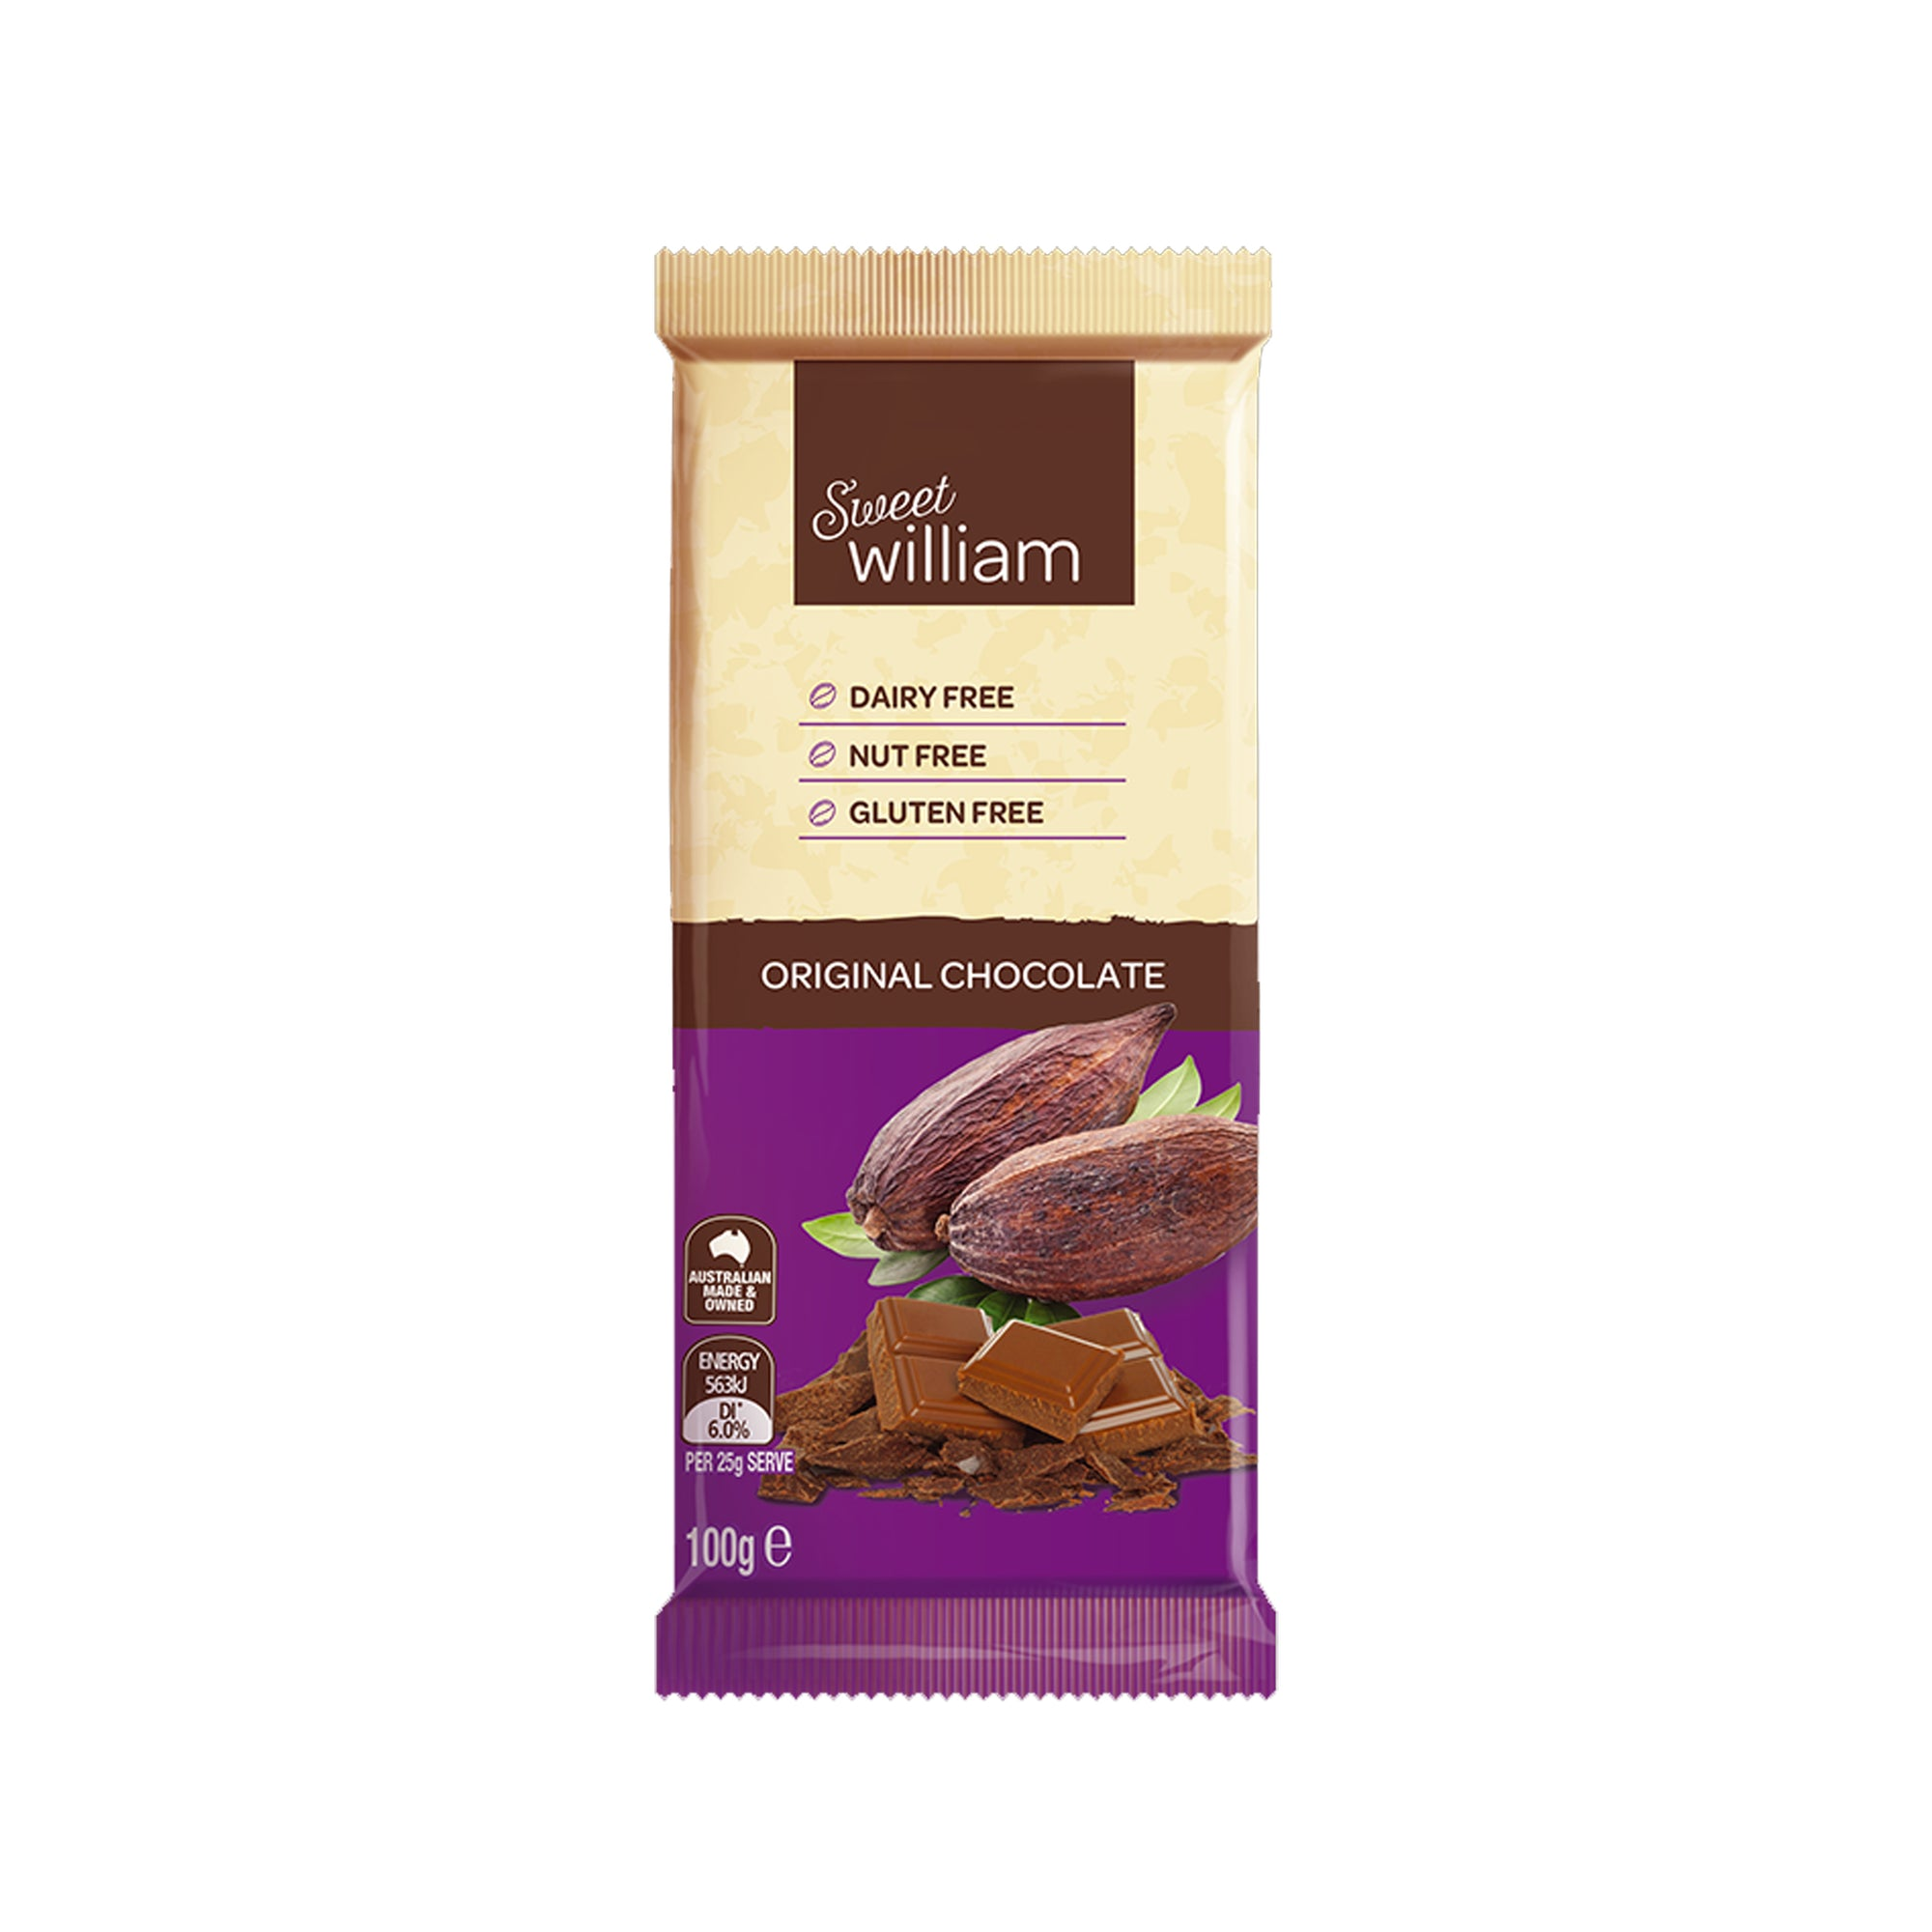 Sweet William - Original Chocolate Bar 100g